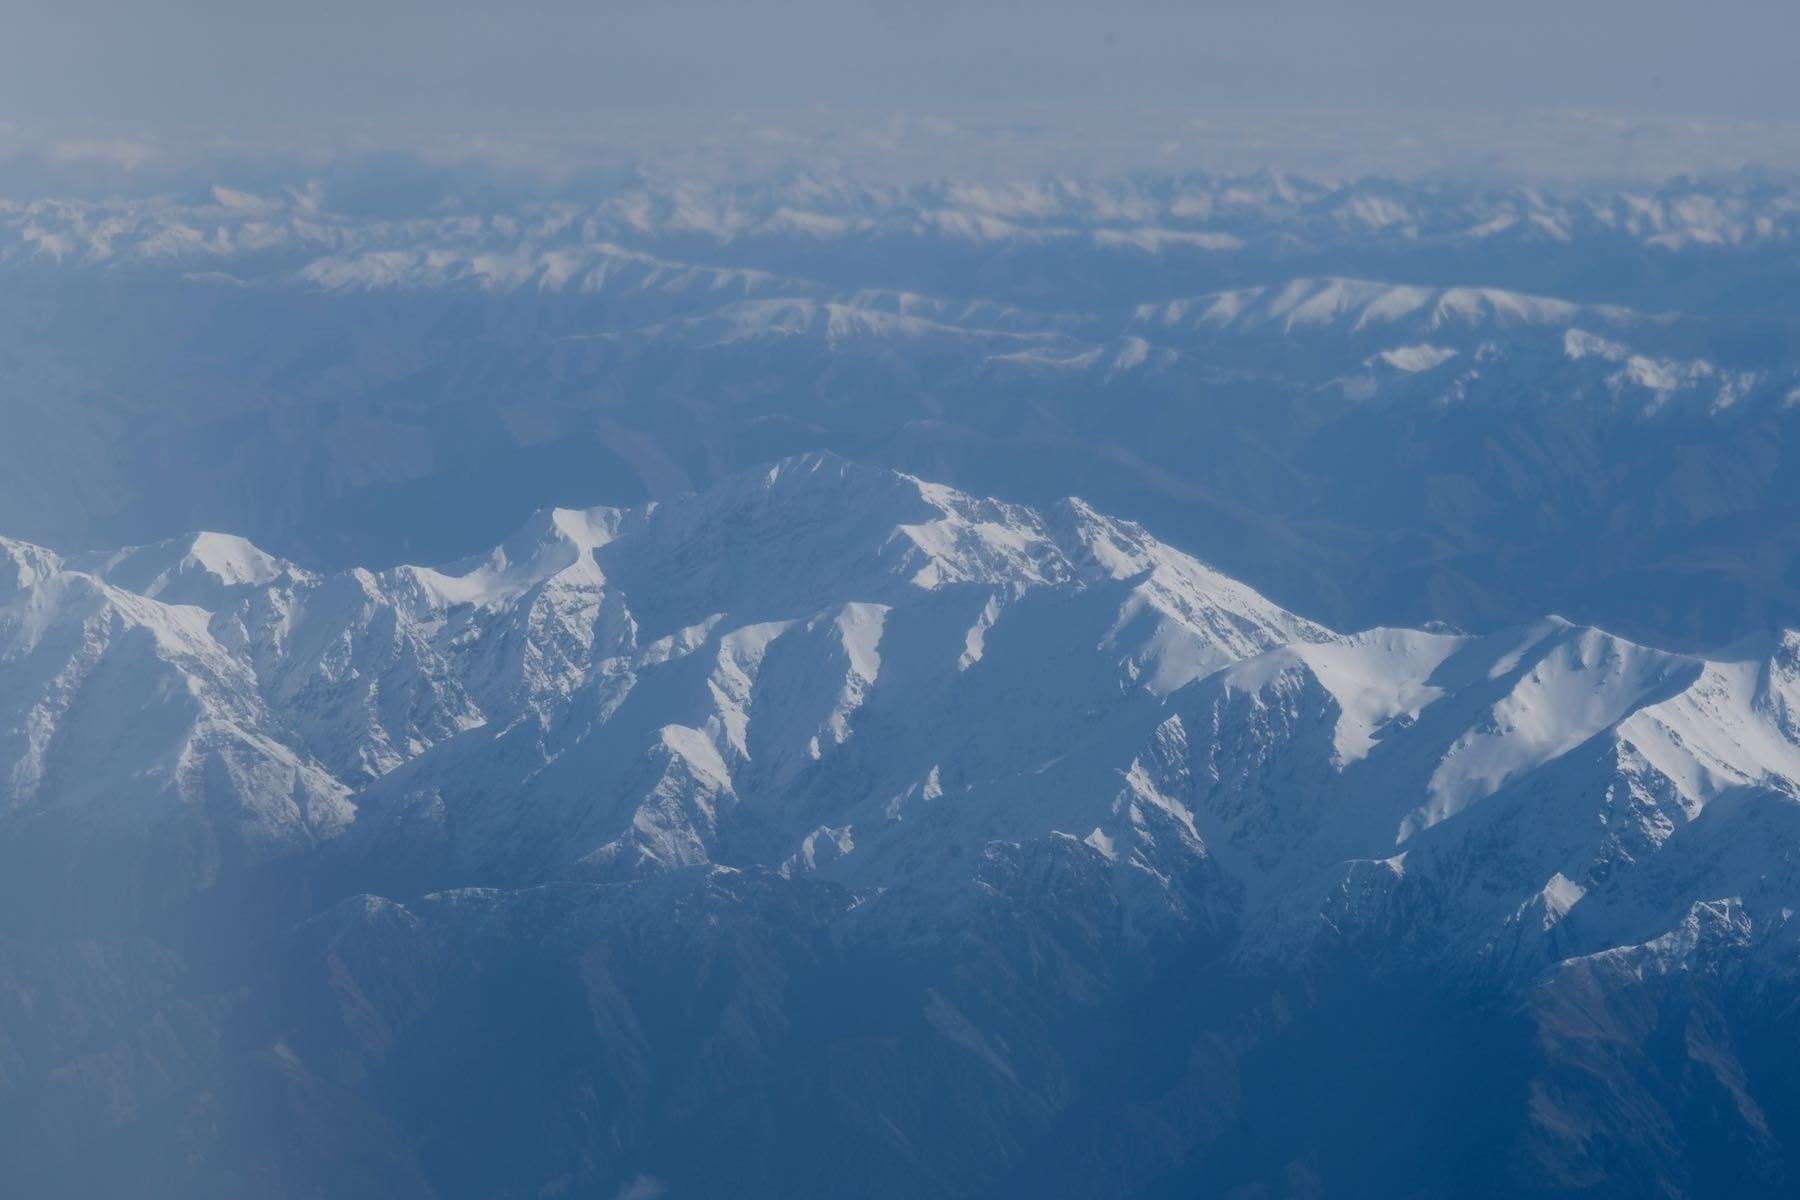 Snow topped mountains from a plane window.